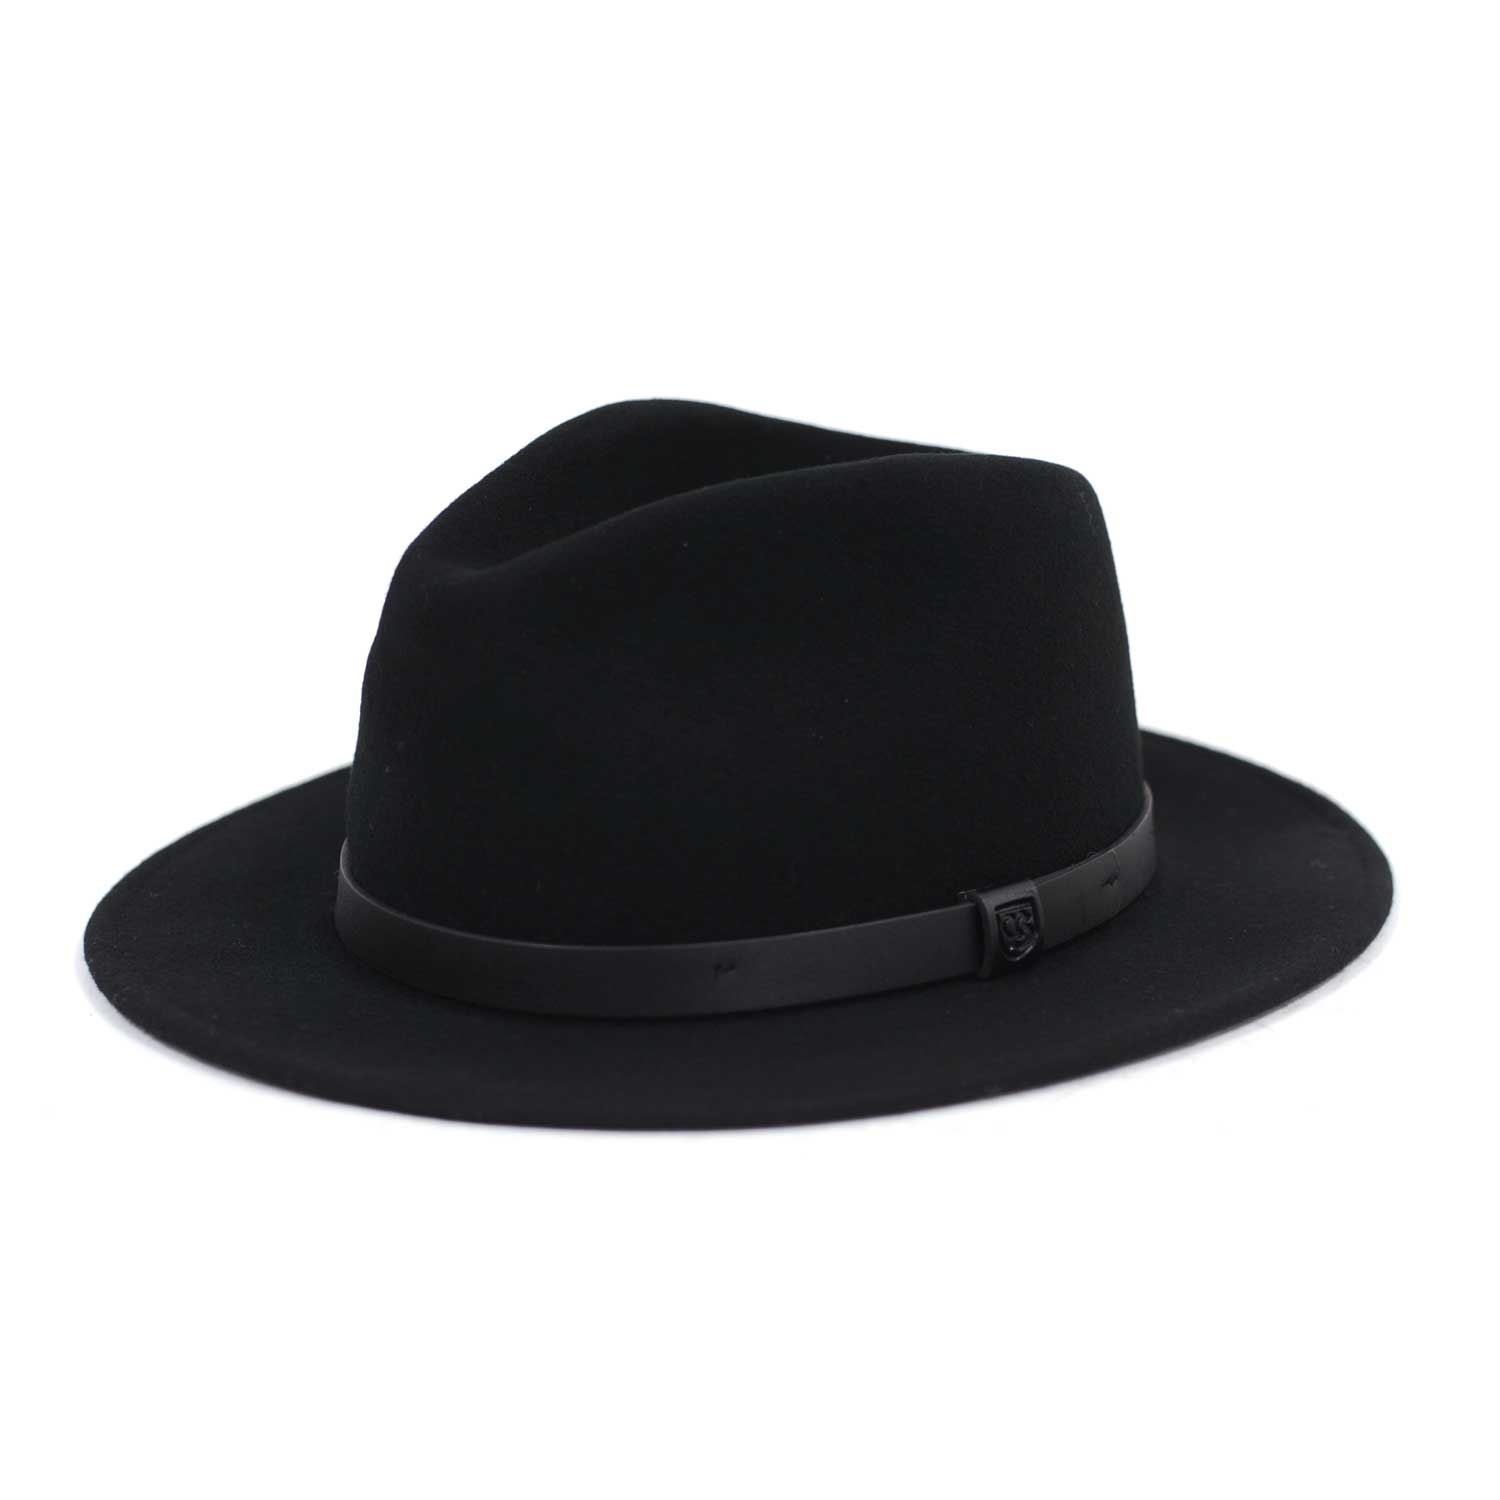 Discover fedora hats for men at ASOS. Update your look with a hat and shop for wool or felt fedoras. Choose from brands like Catarzi, Brixton and Goorin.